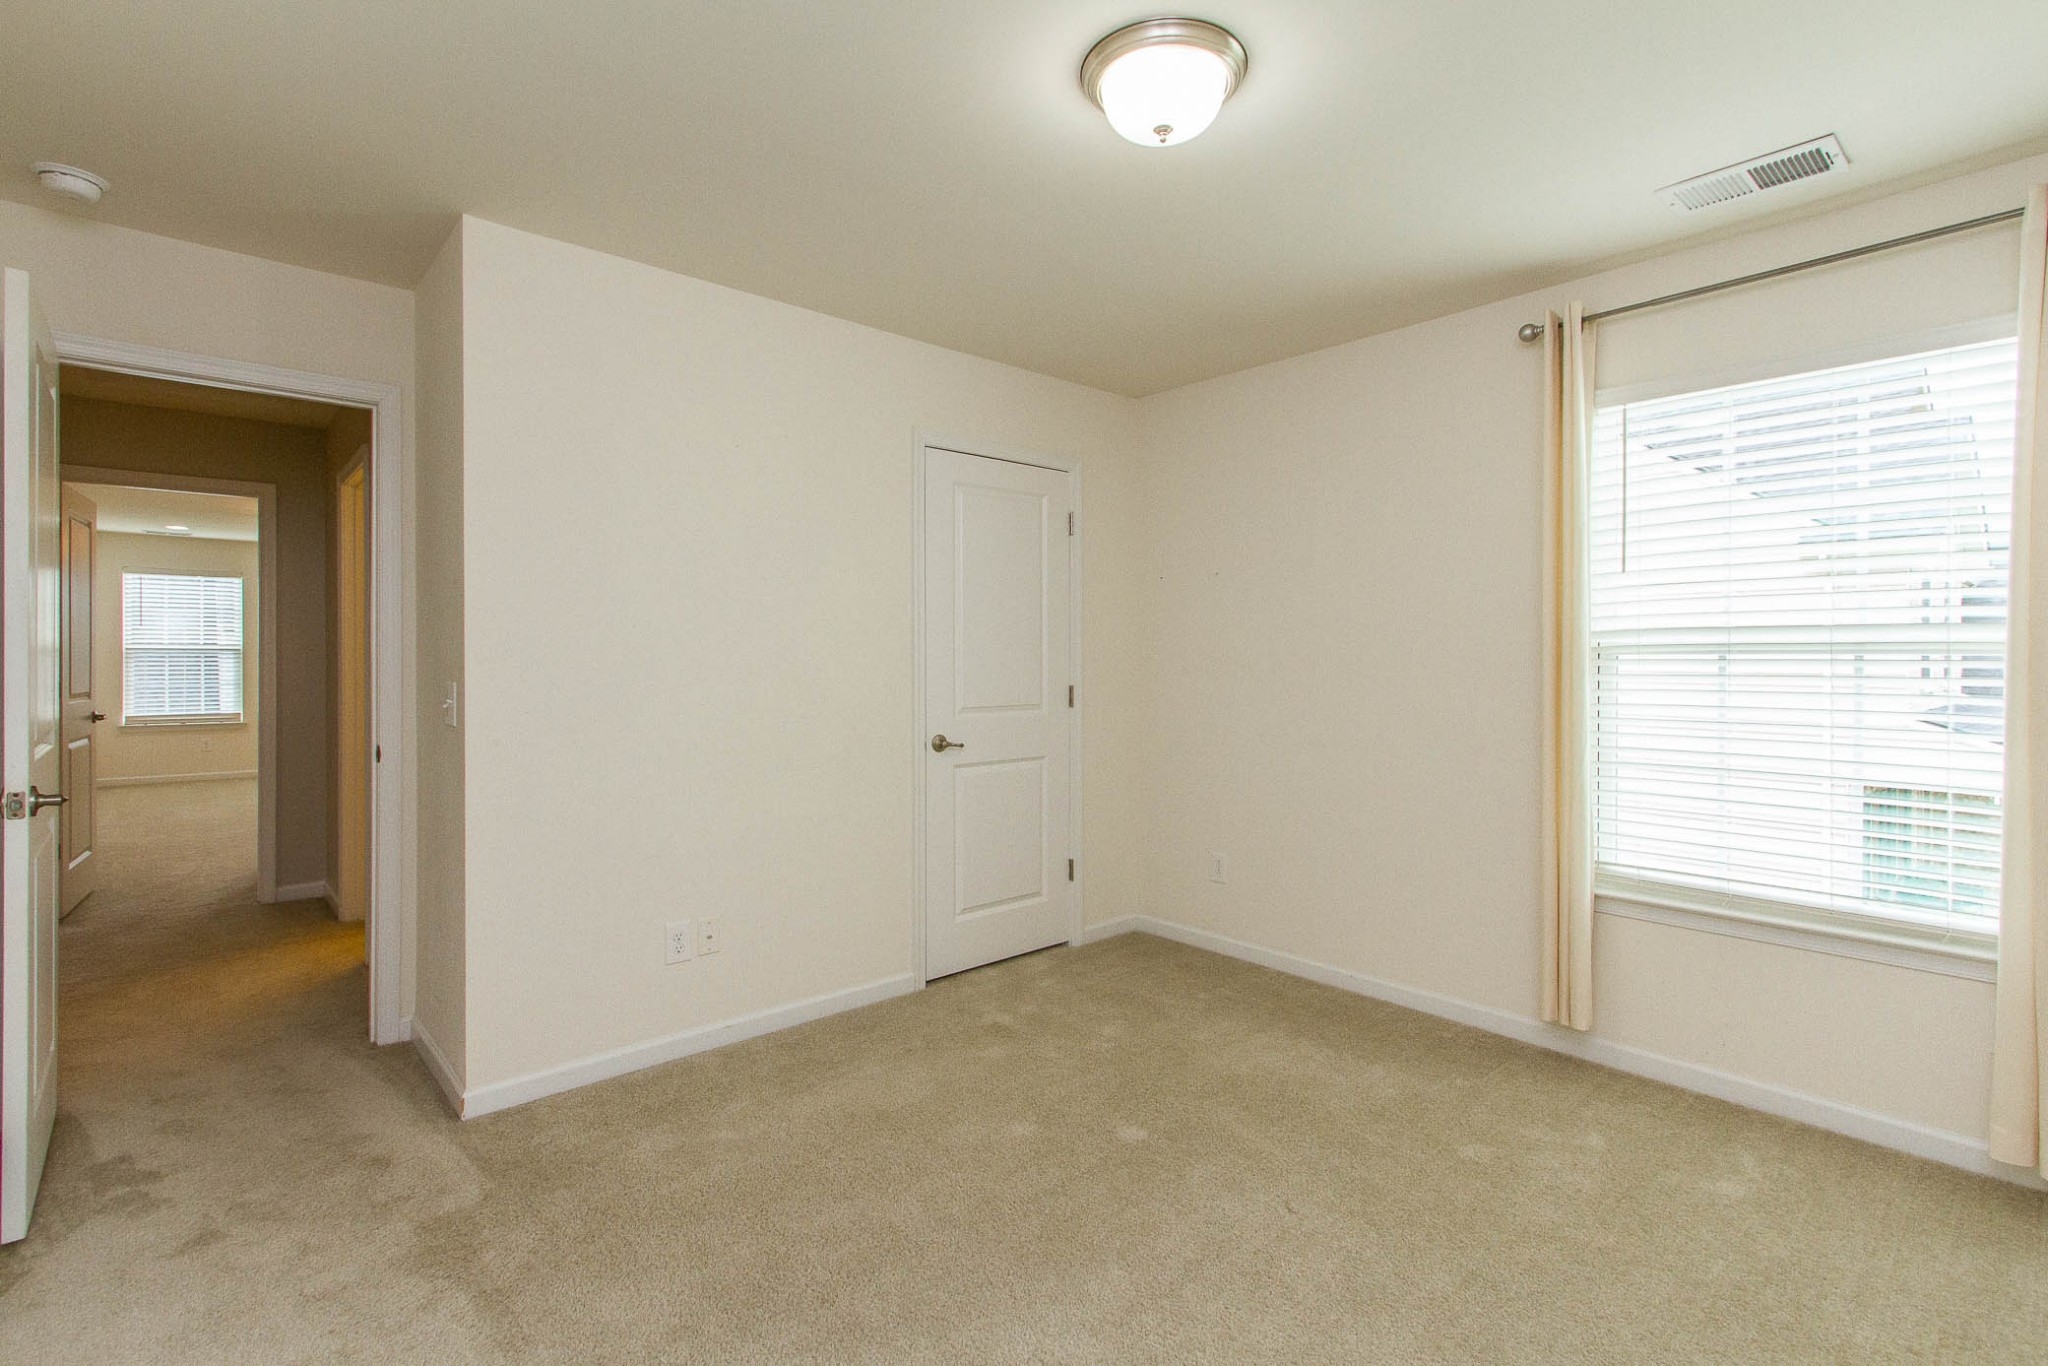 1031 New Eanes Dr Property Photo 35